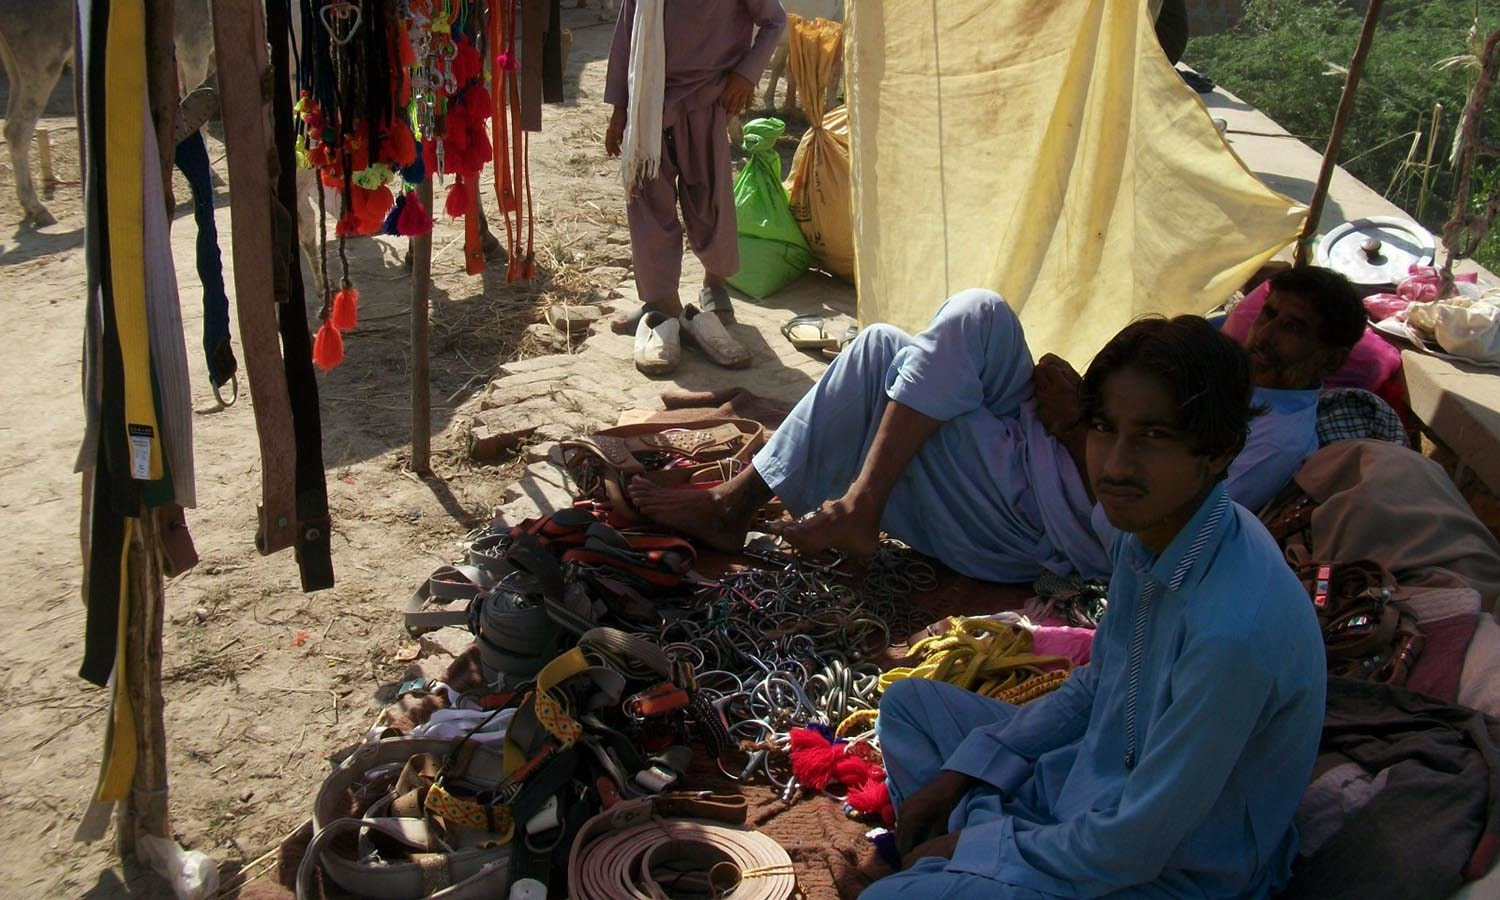 Donkey ornaments - Stall Owners Waiting To Sell Ornaments And Donkey Accessories At The Annual Donkey Market In Badin